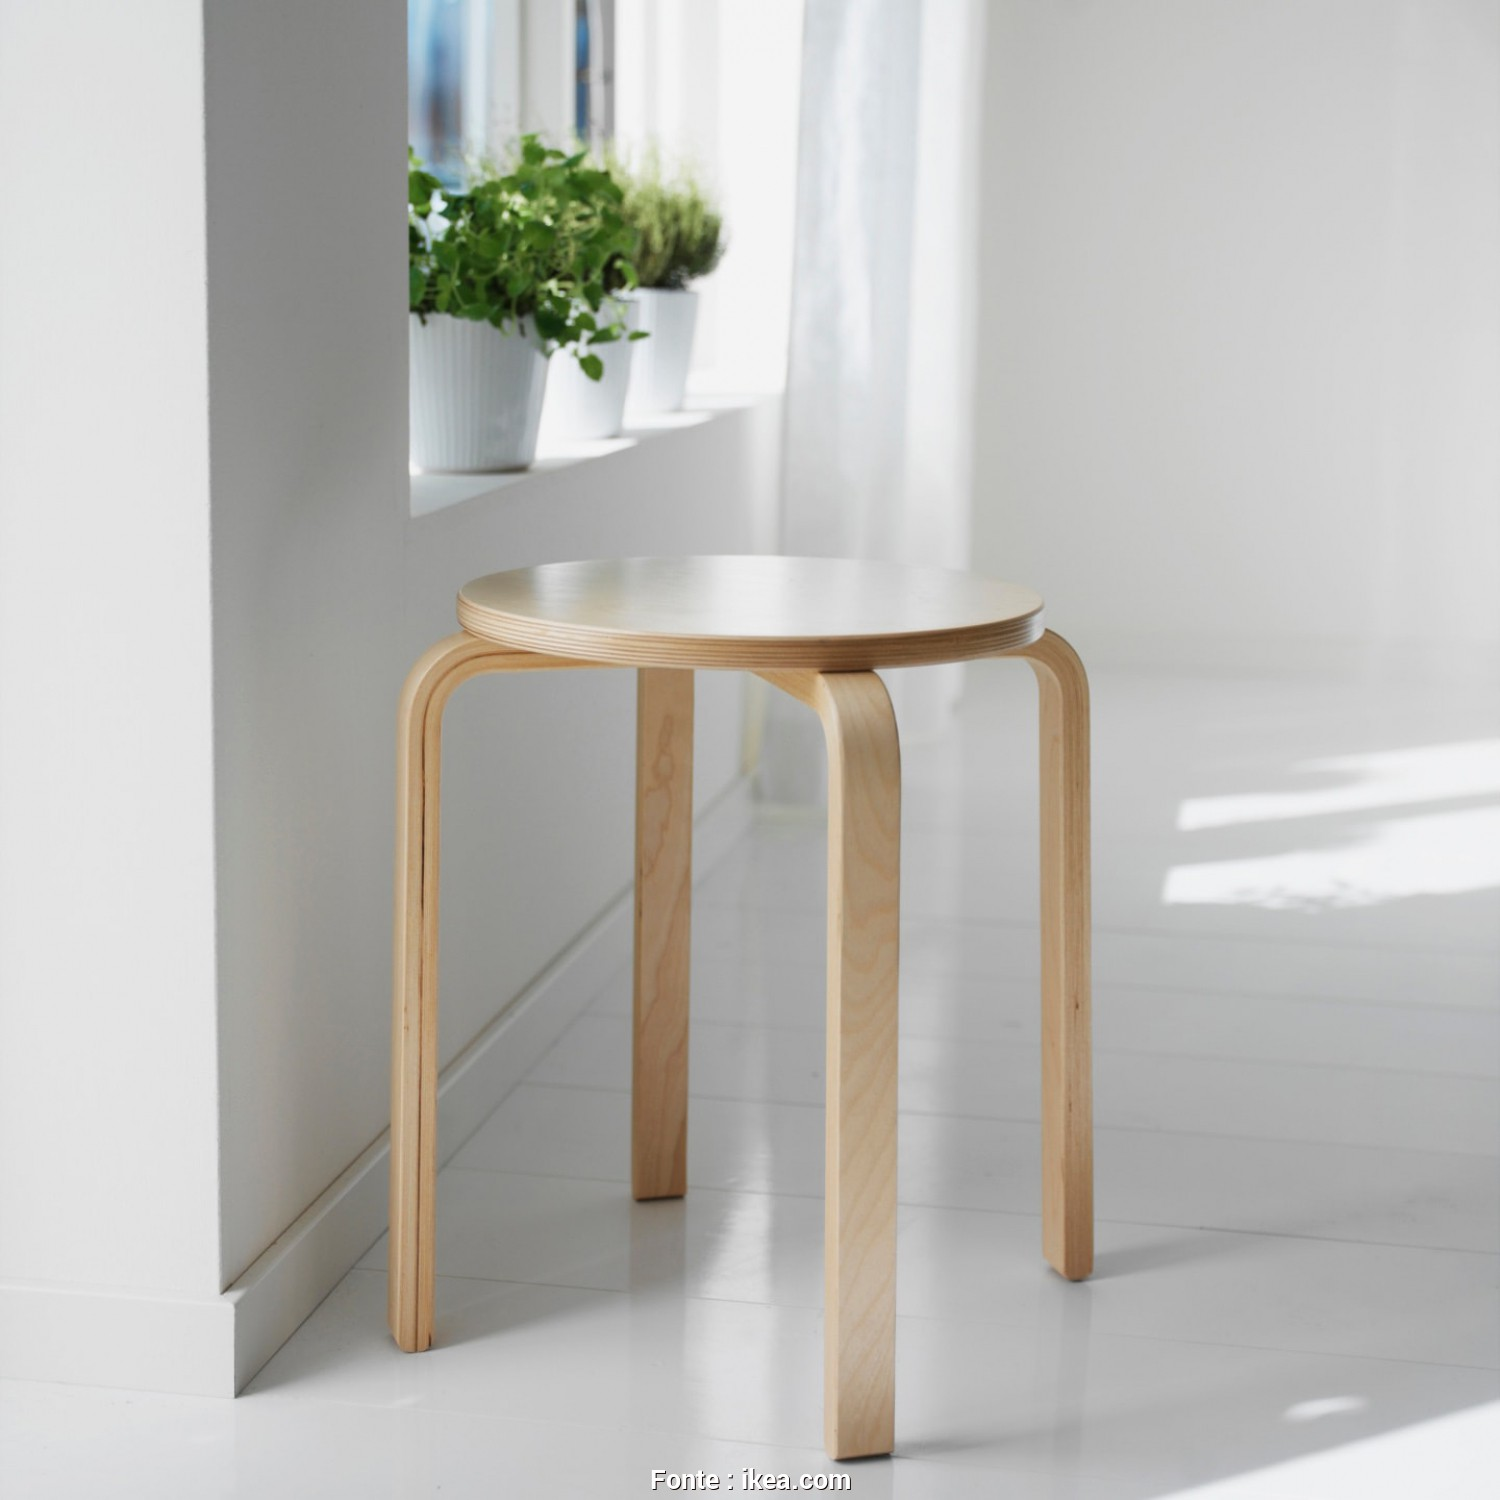 Stoffe Ikea Grancia, Rustico FROSTA Stool, Birch Plywood., Stool, Be Stacked, So, Can Keep